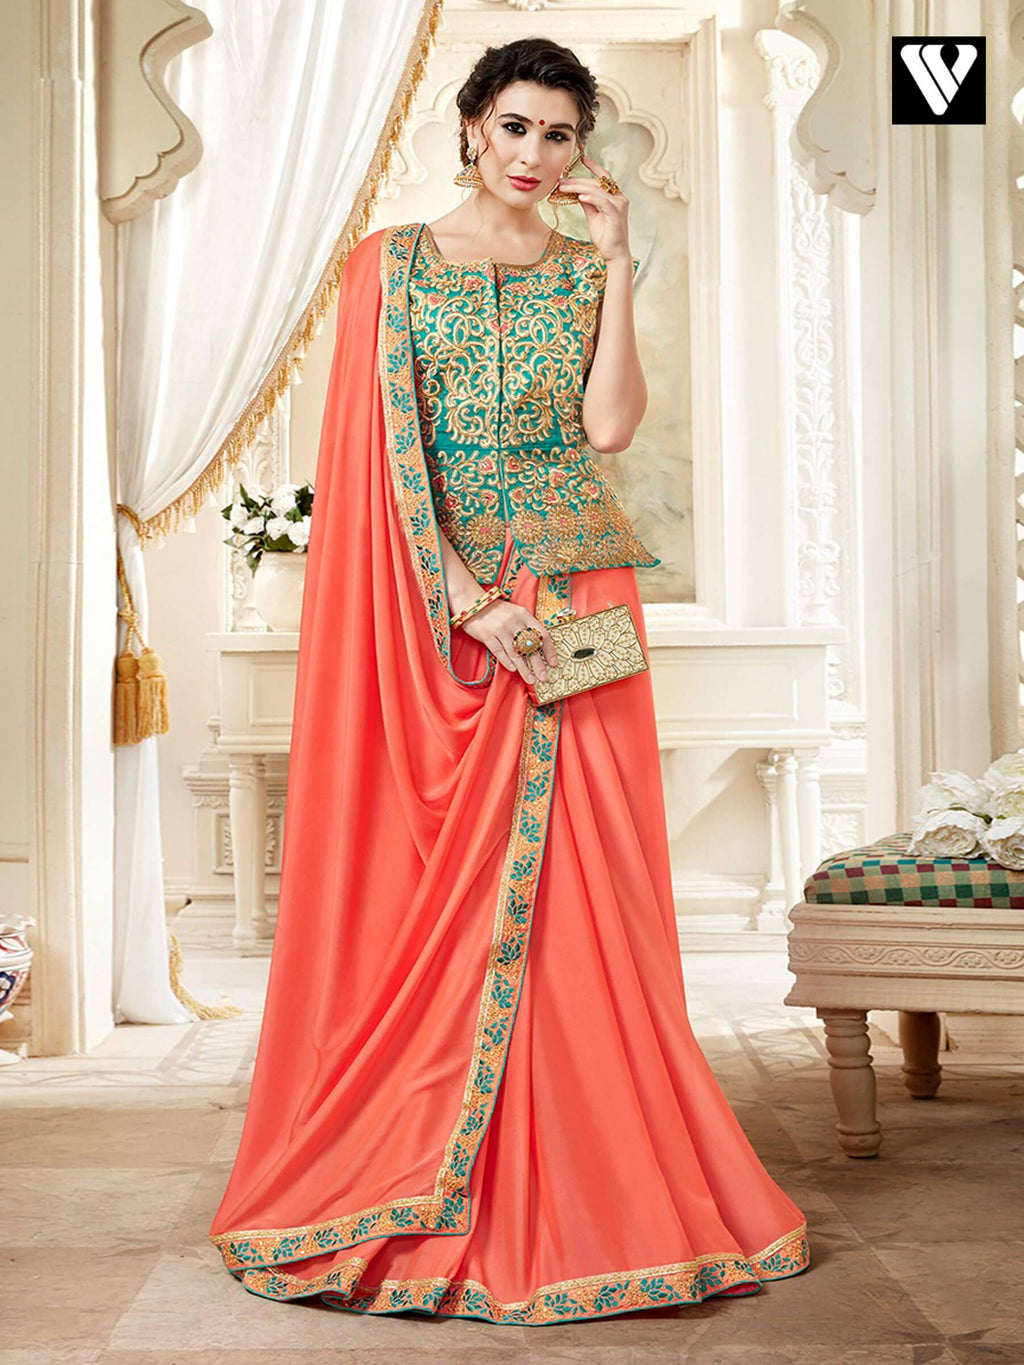 Sangeet Wear Fancy Plain Saree with Lace Border and Designer Long Blouse